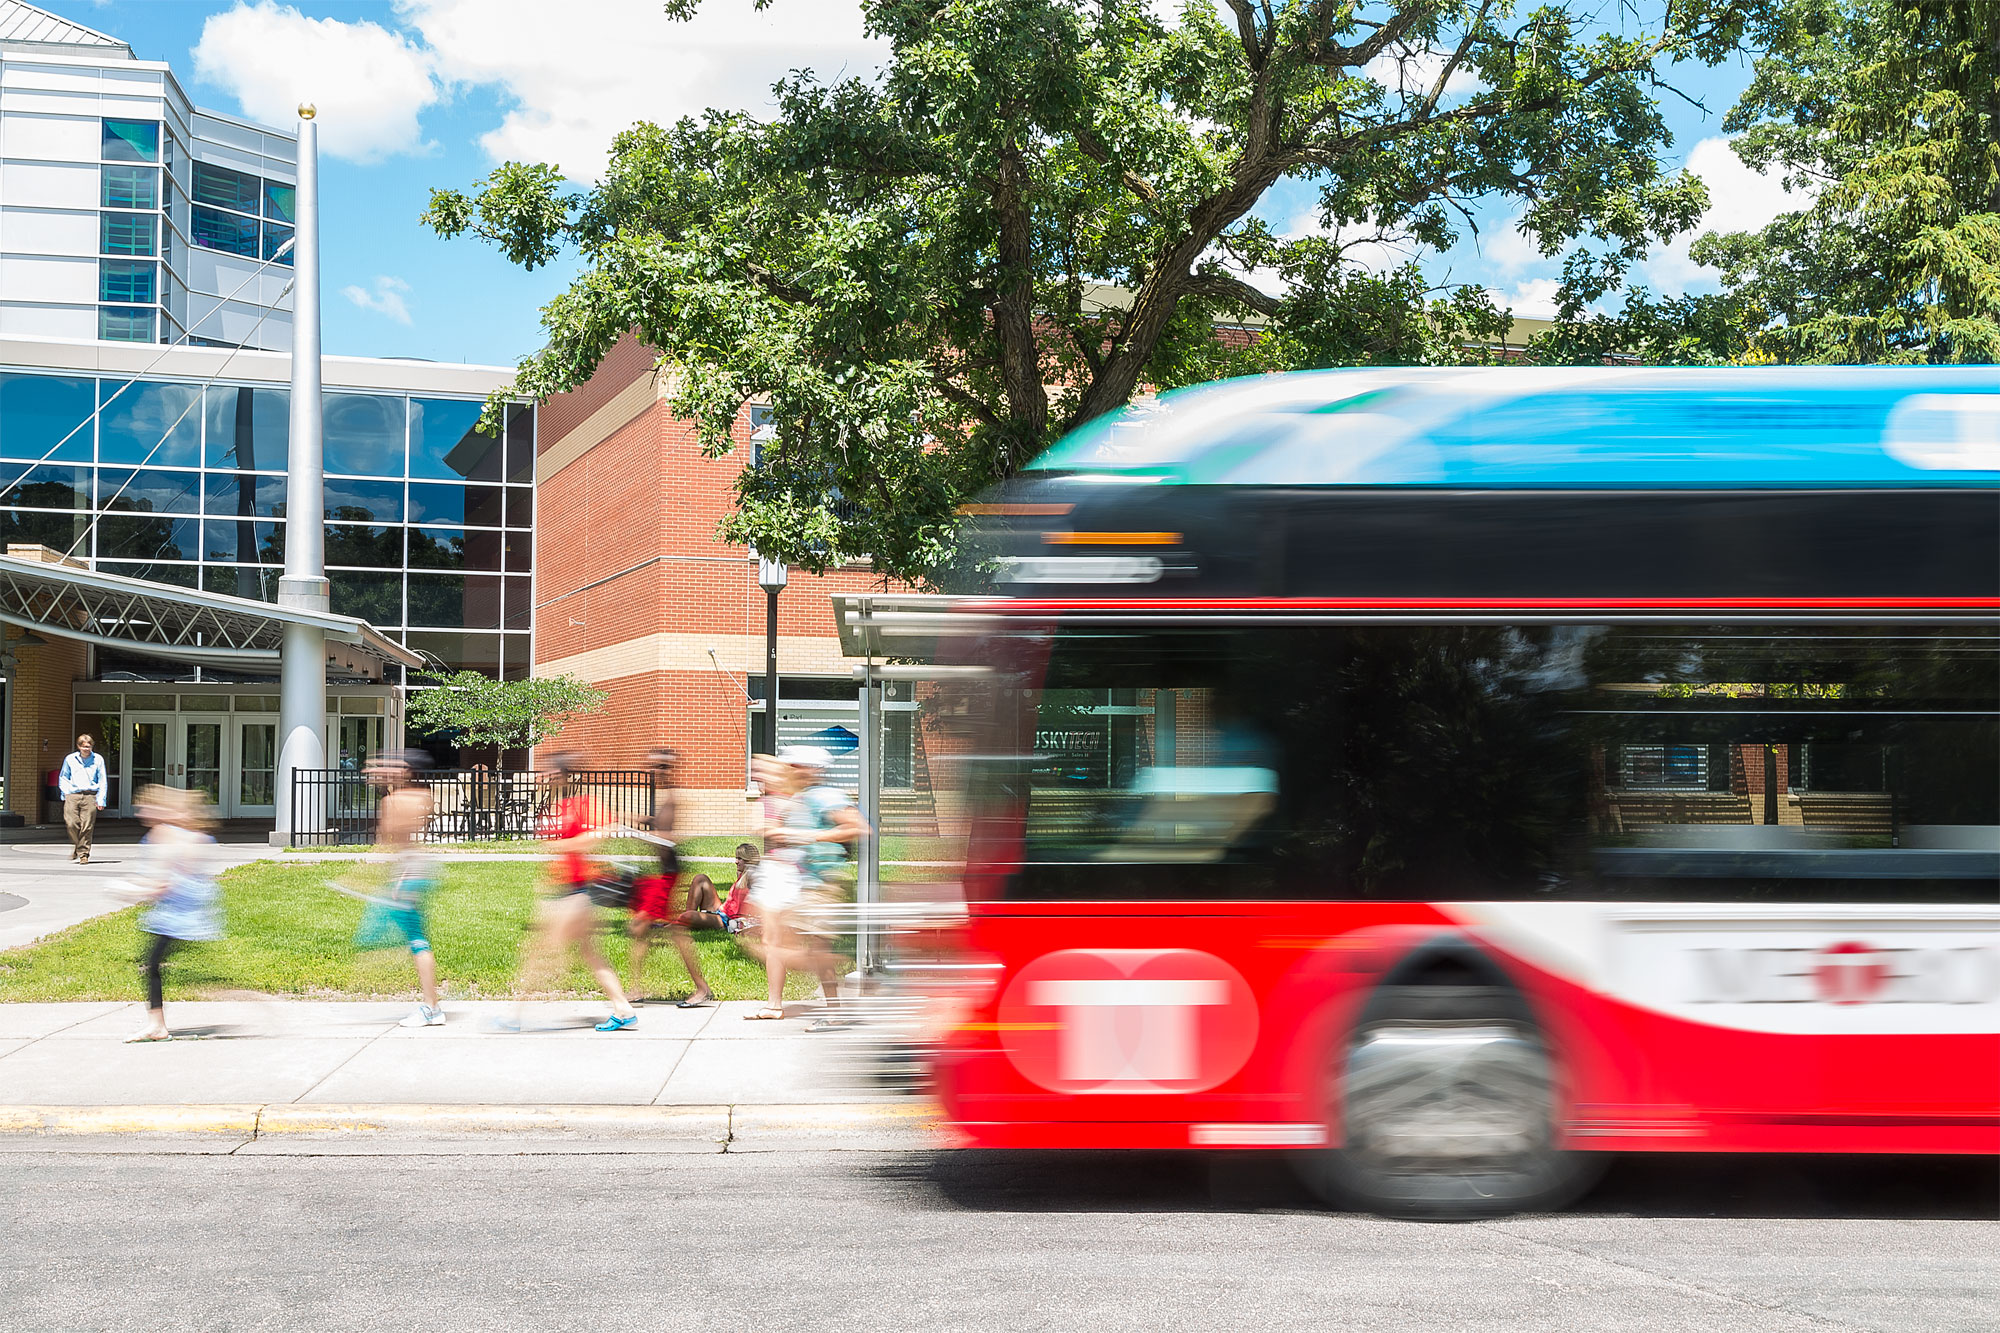 IMAGE: Bus Arriving to St. Cloud State University (SCSU)